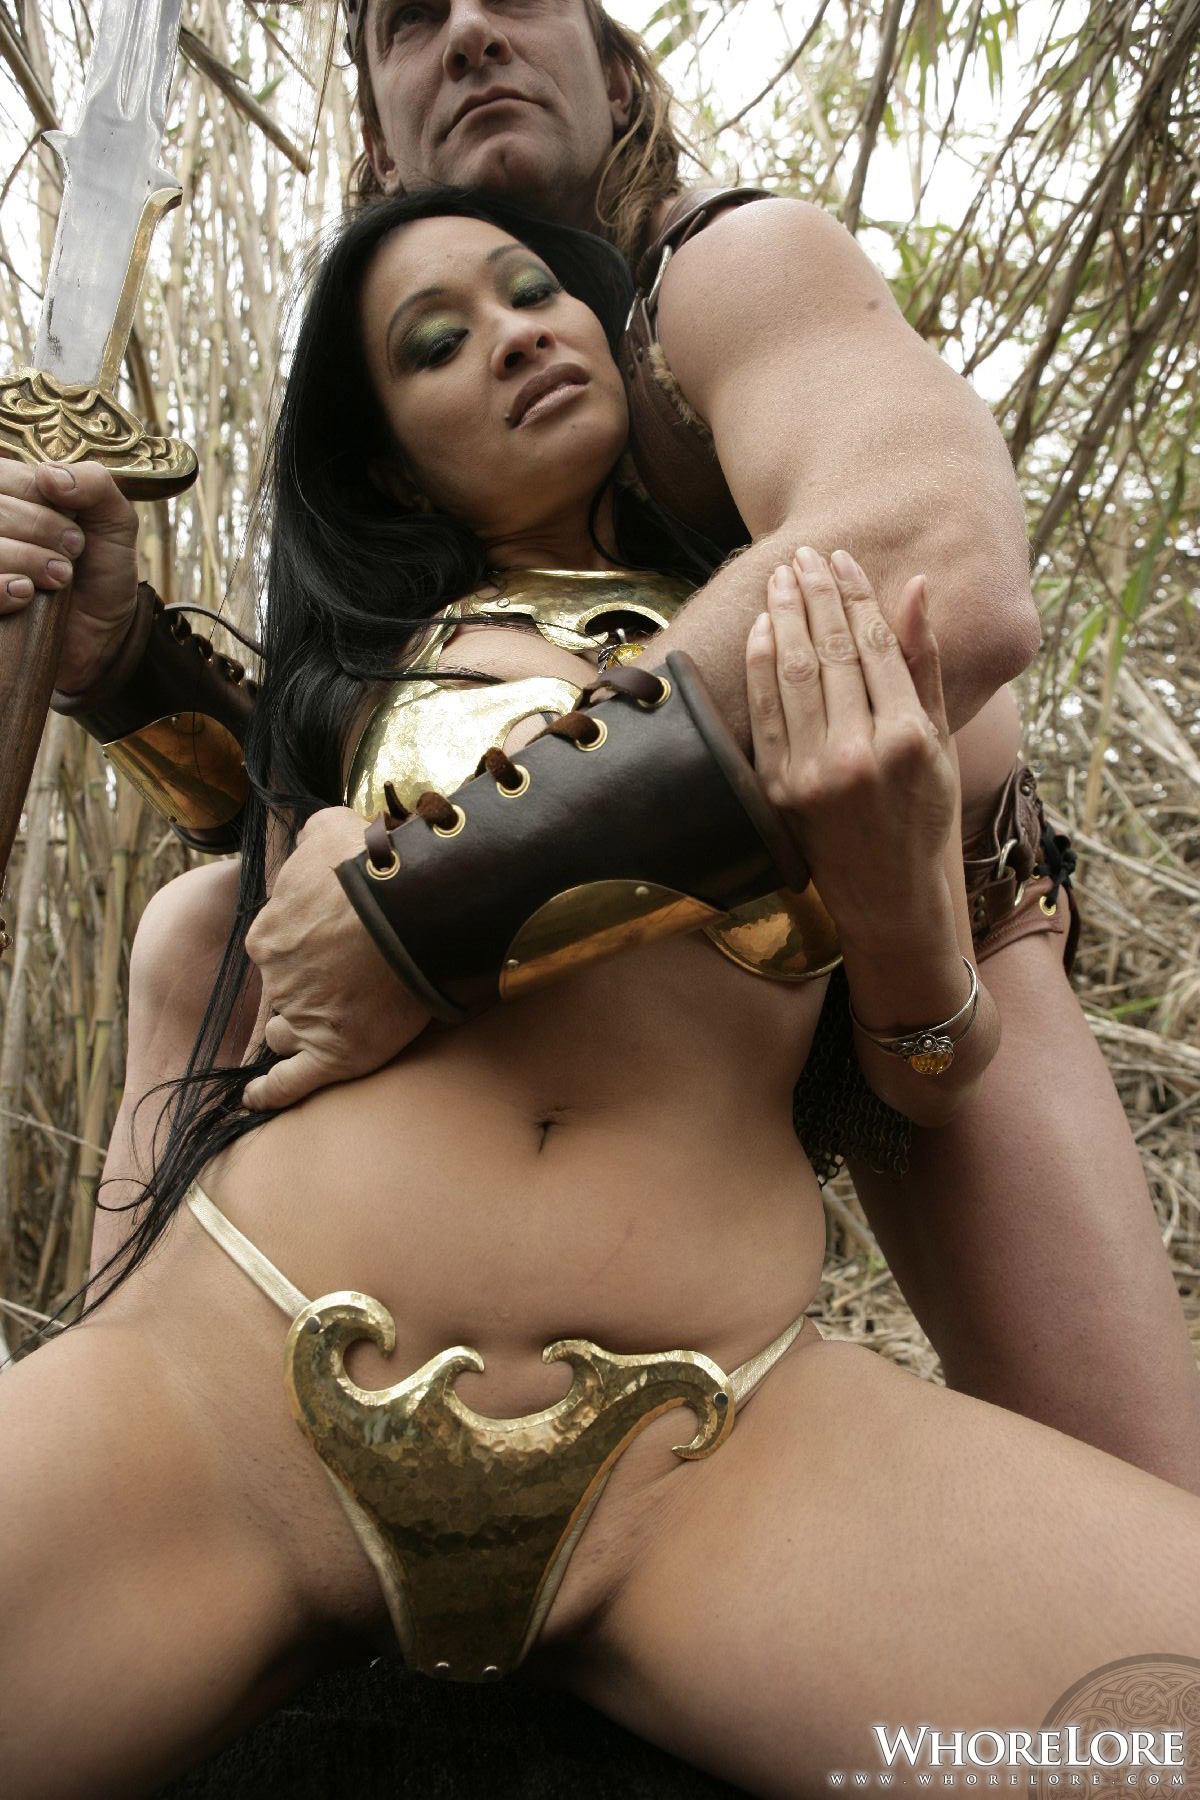 Warrior porno pics adult download